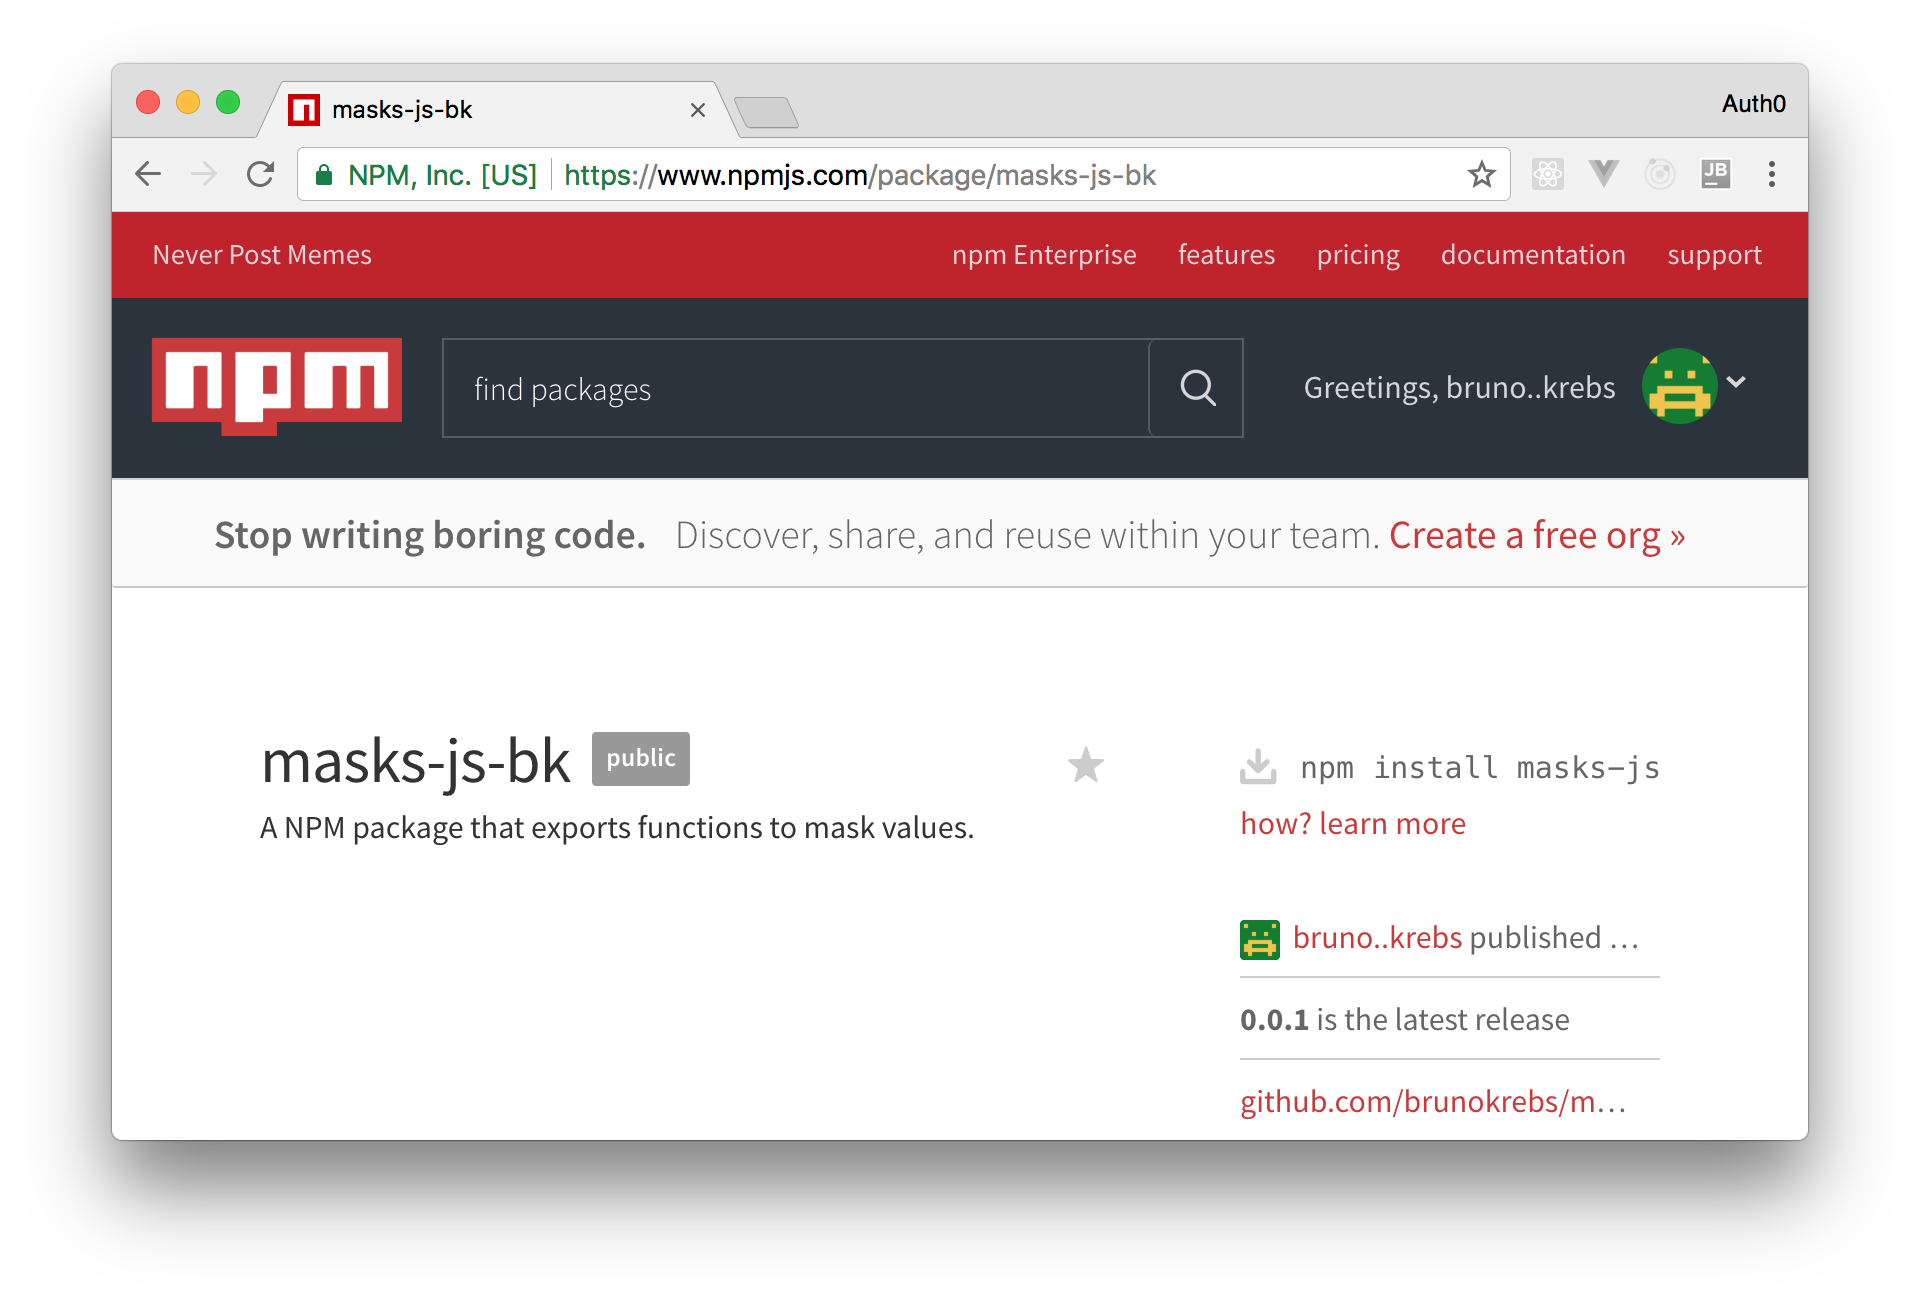 NPM Package Development: The NPM Webpage of our NPM package.